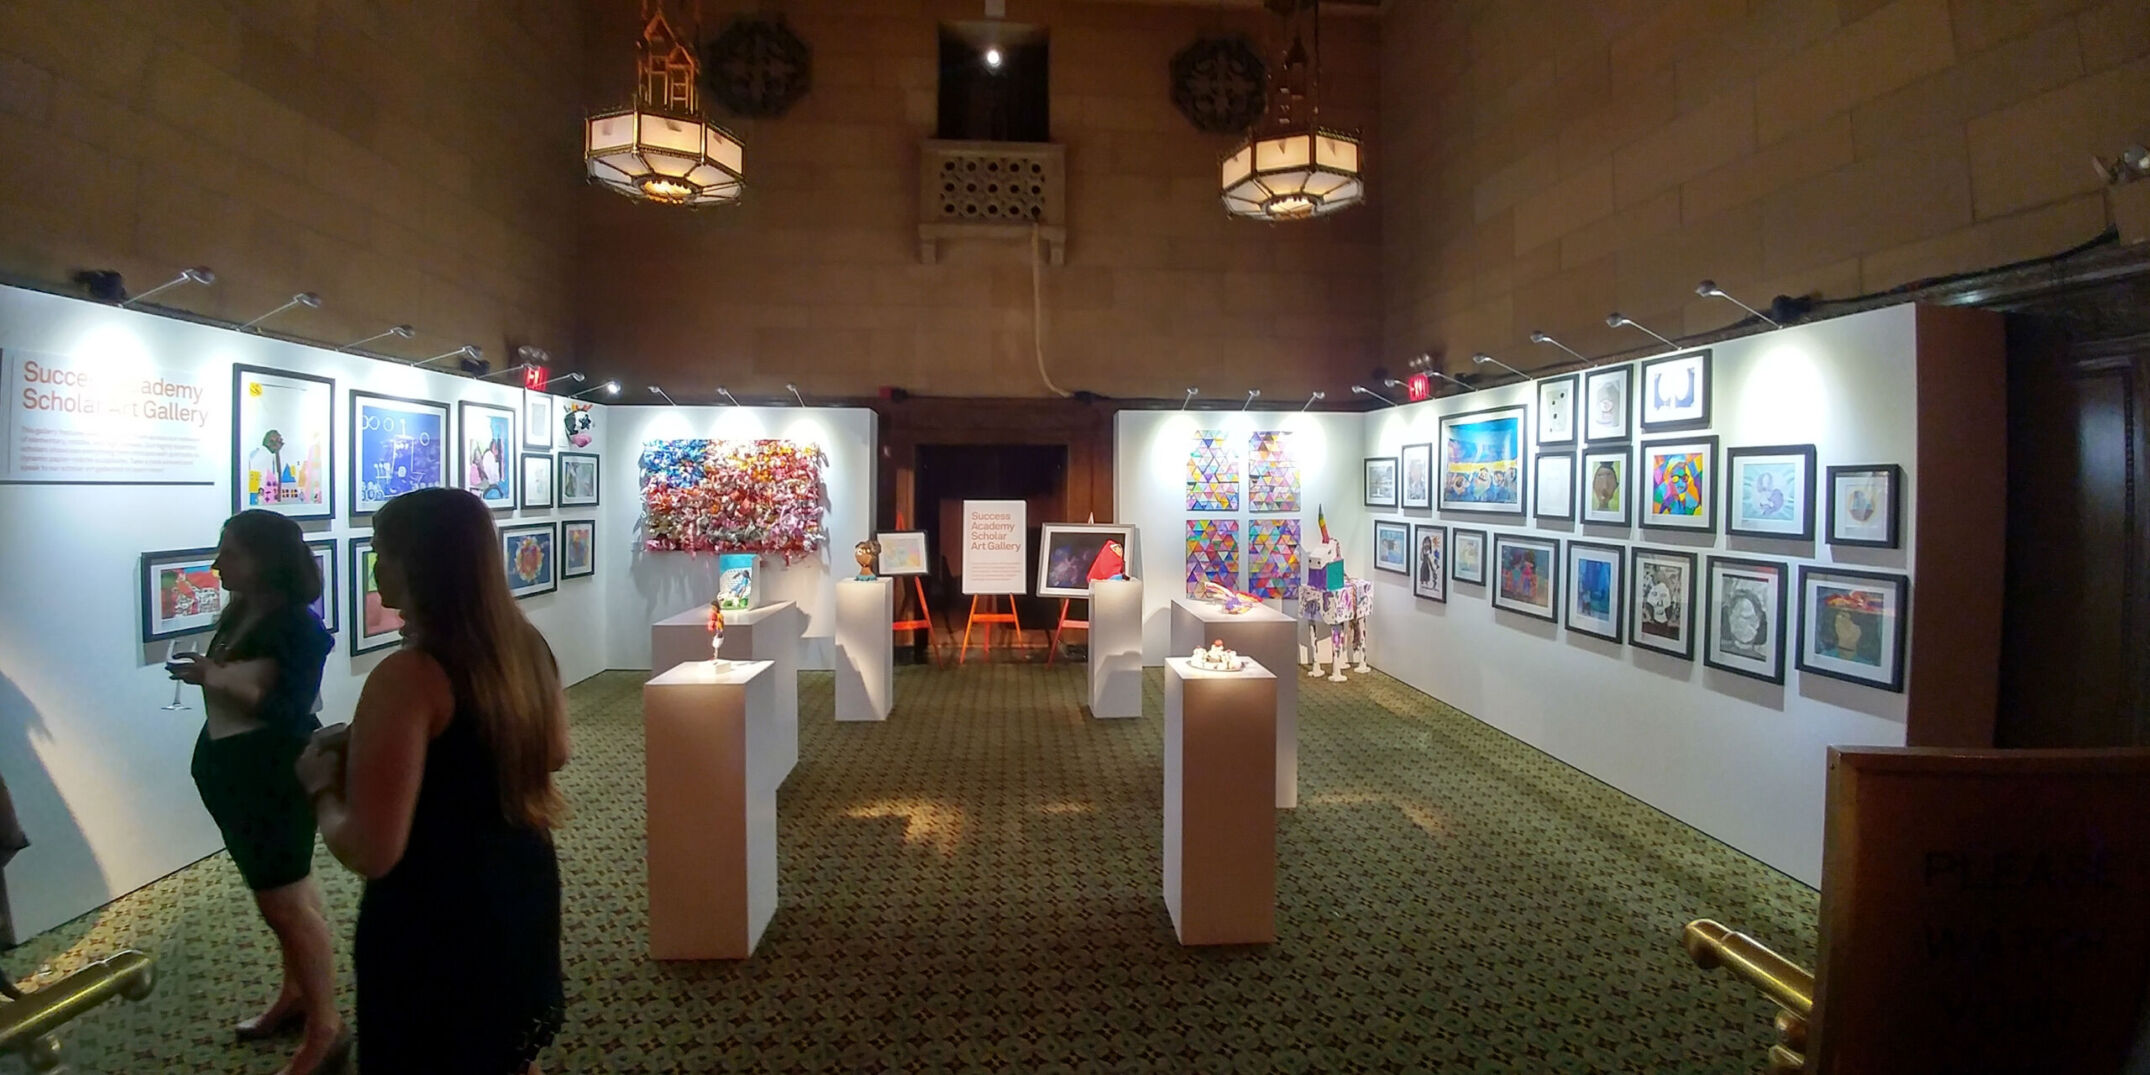 Rental gallery walls and pedestals with stem lights with hanging artwork and 3D artwork on display at art exhibit